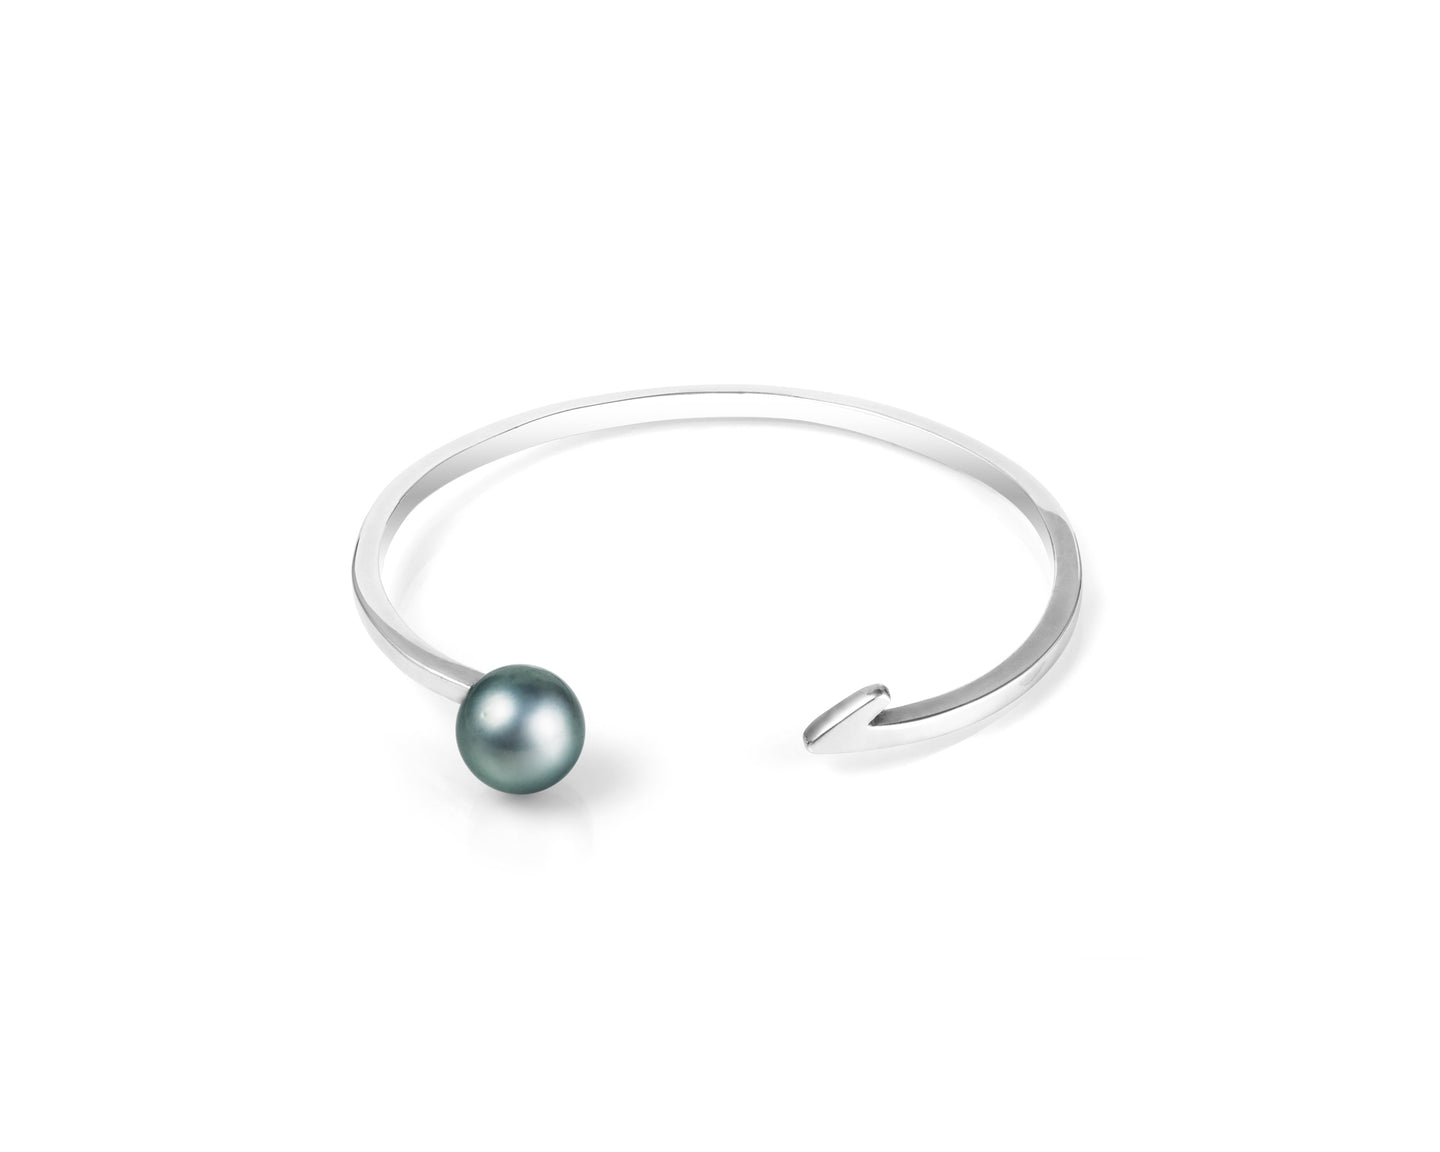 Tahitian Pearl Poseidon Bangle - Last One!